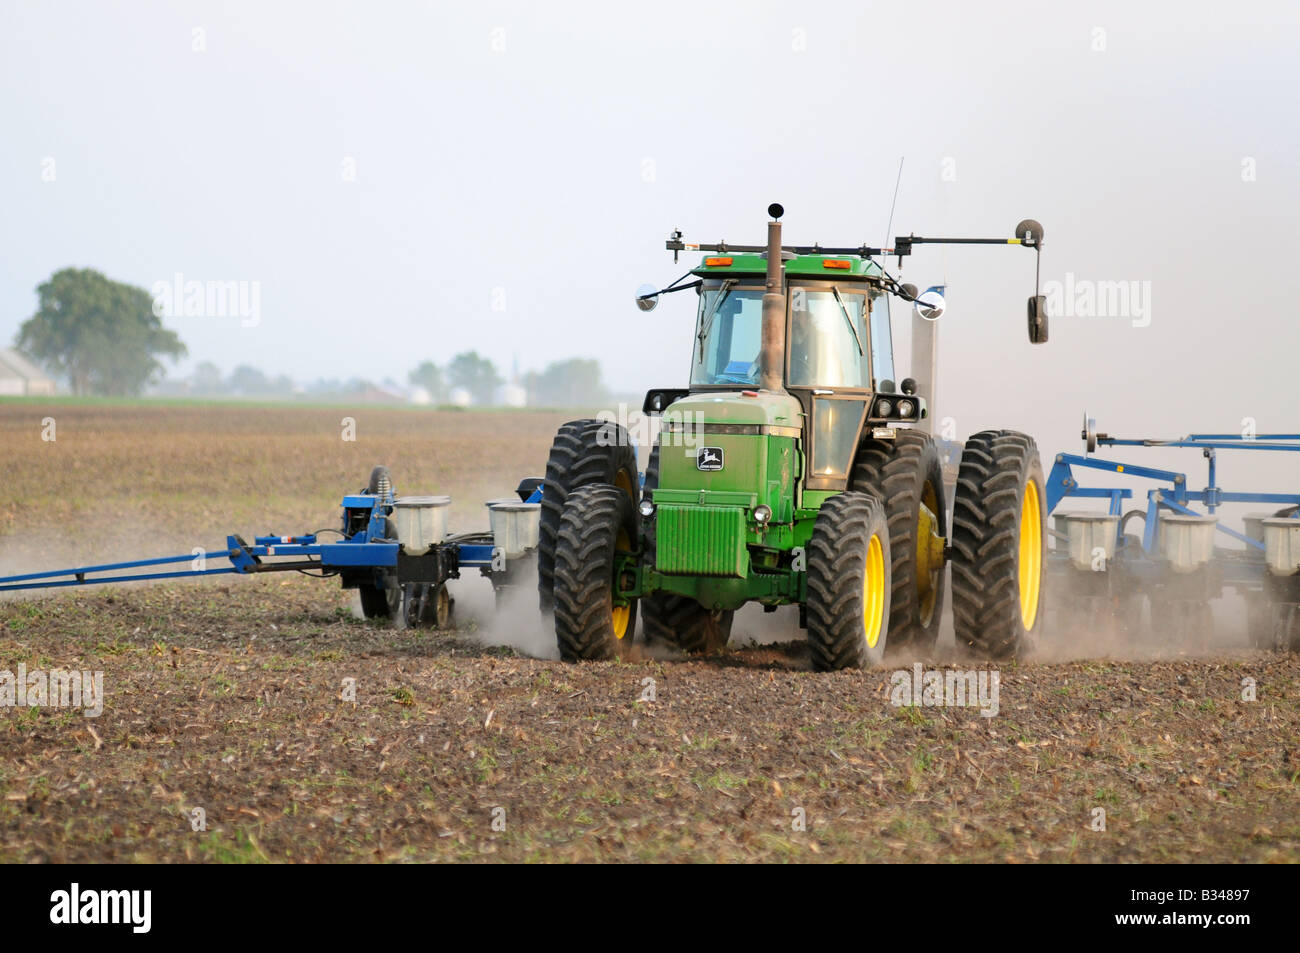 Tractor In Field Planting : John deere tractor planting corn or soybeans in an